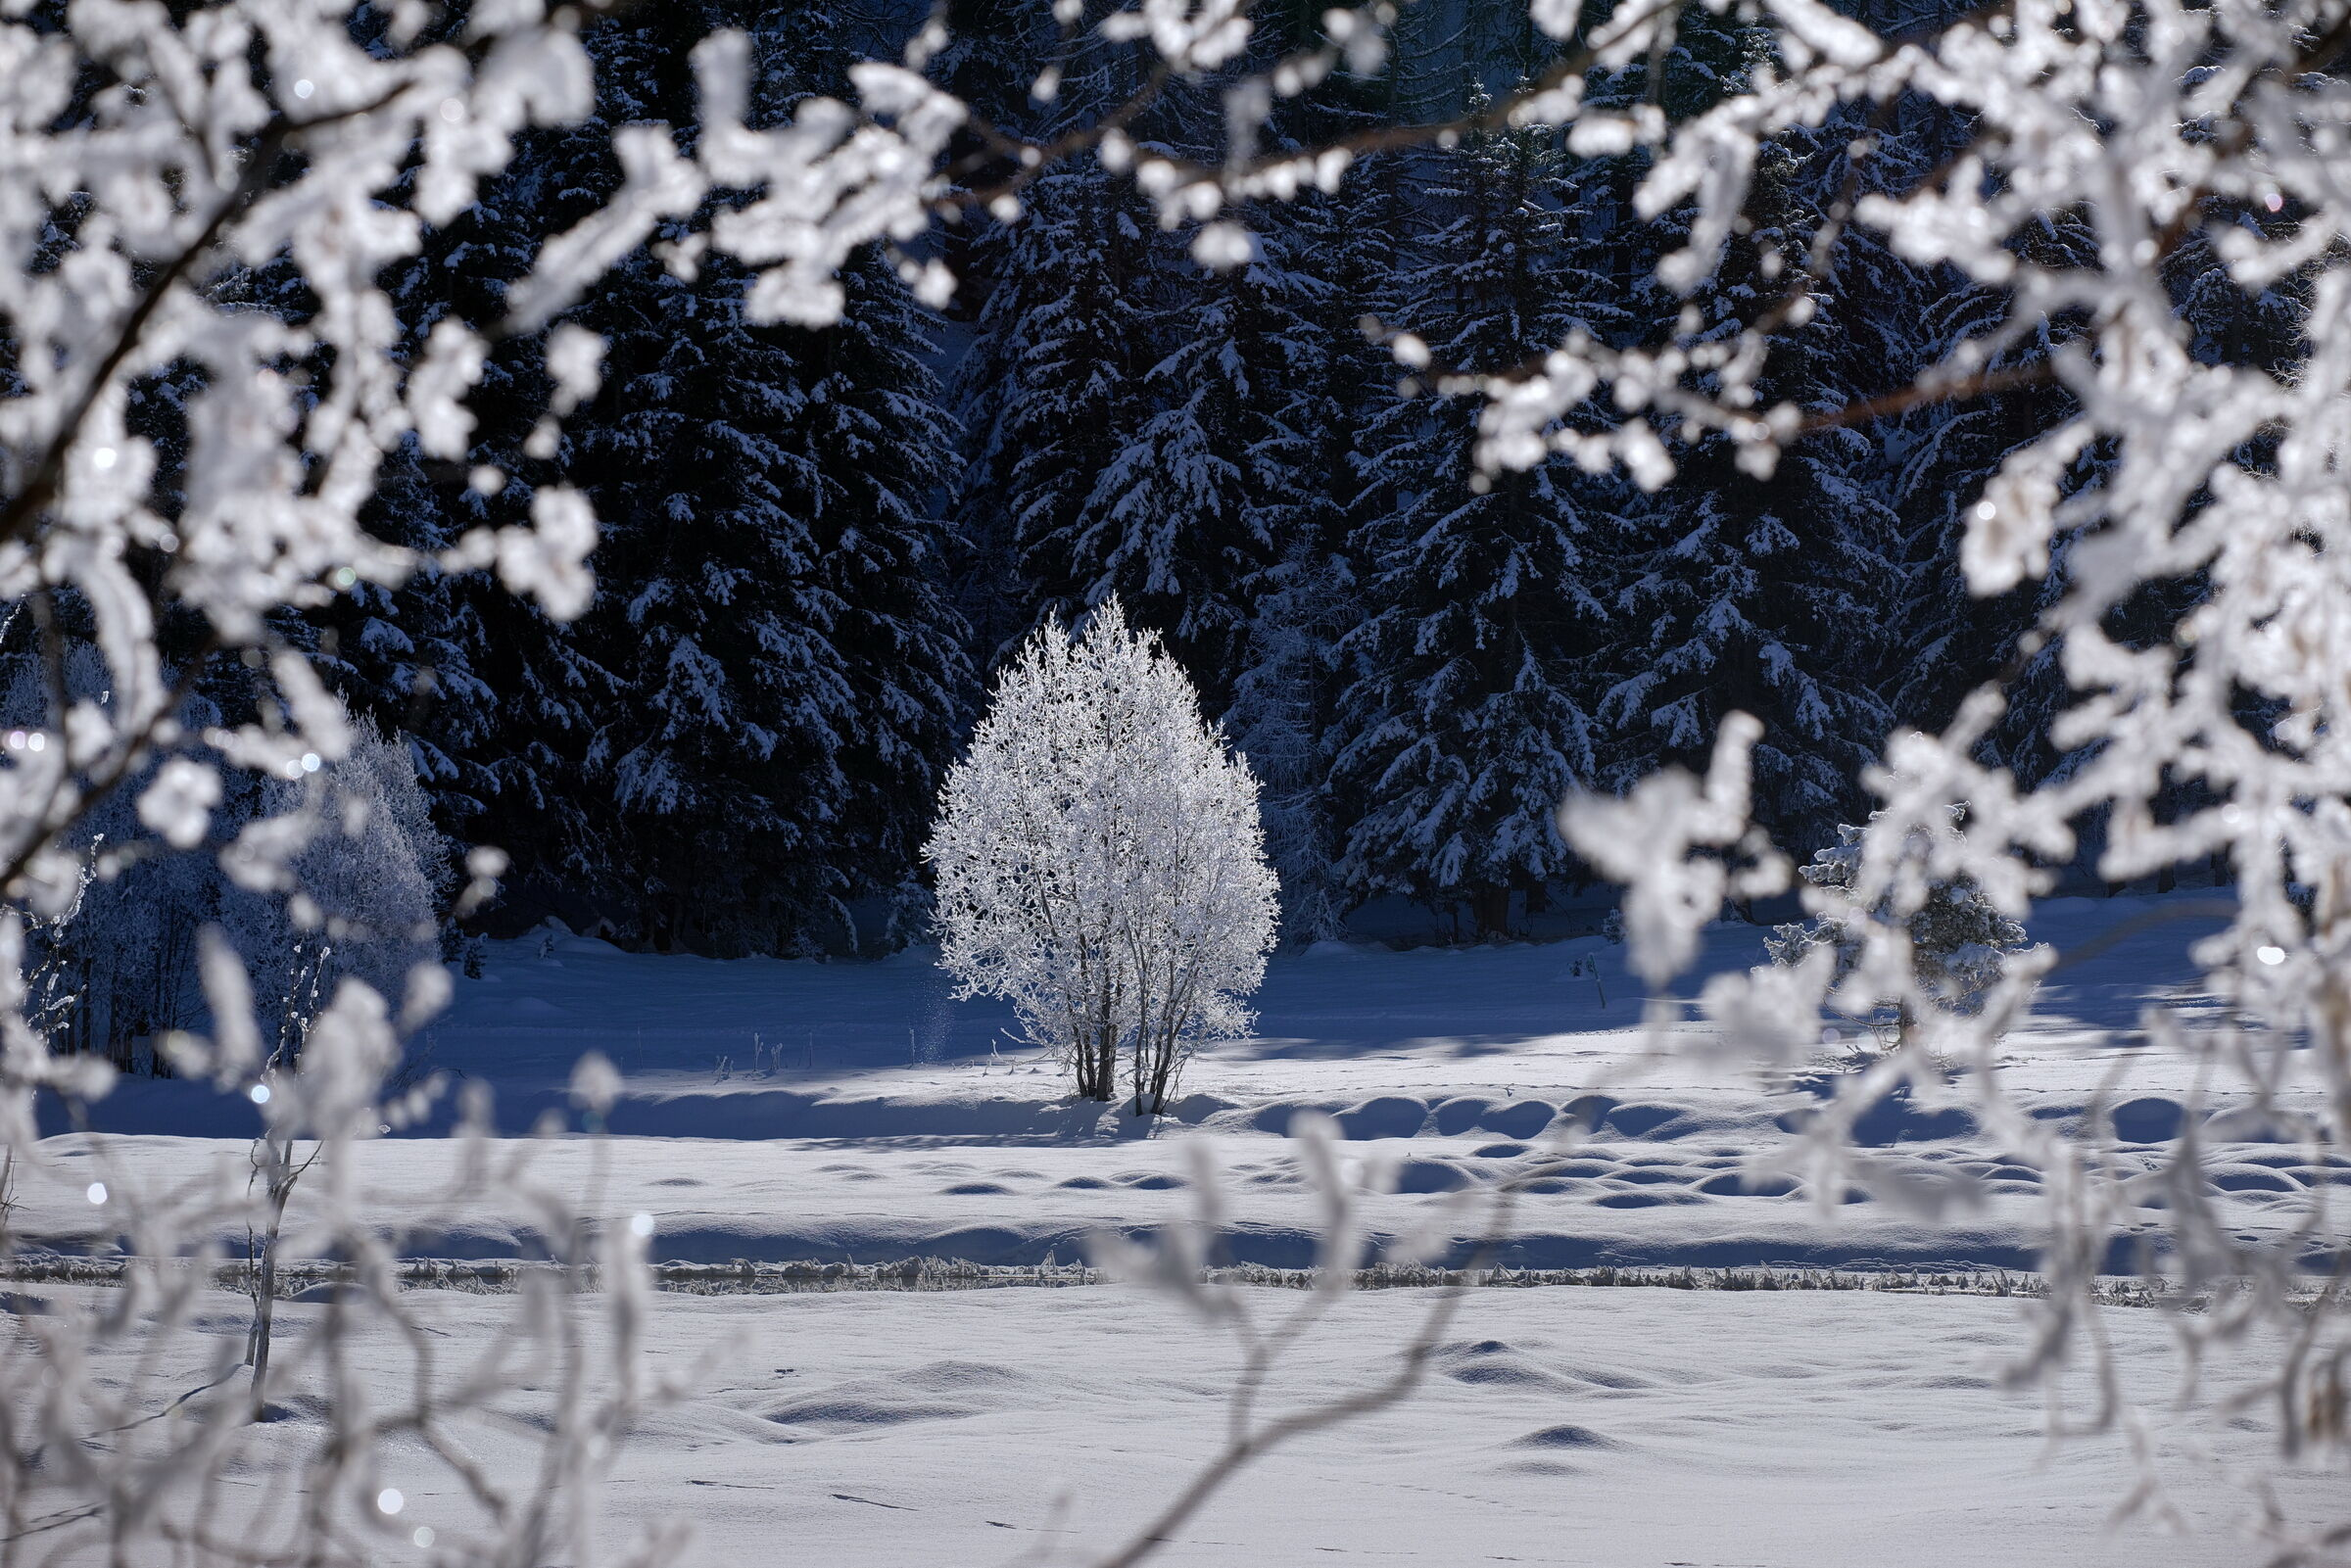 The embroideries of winter...